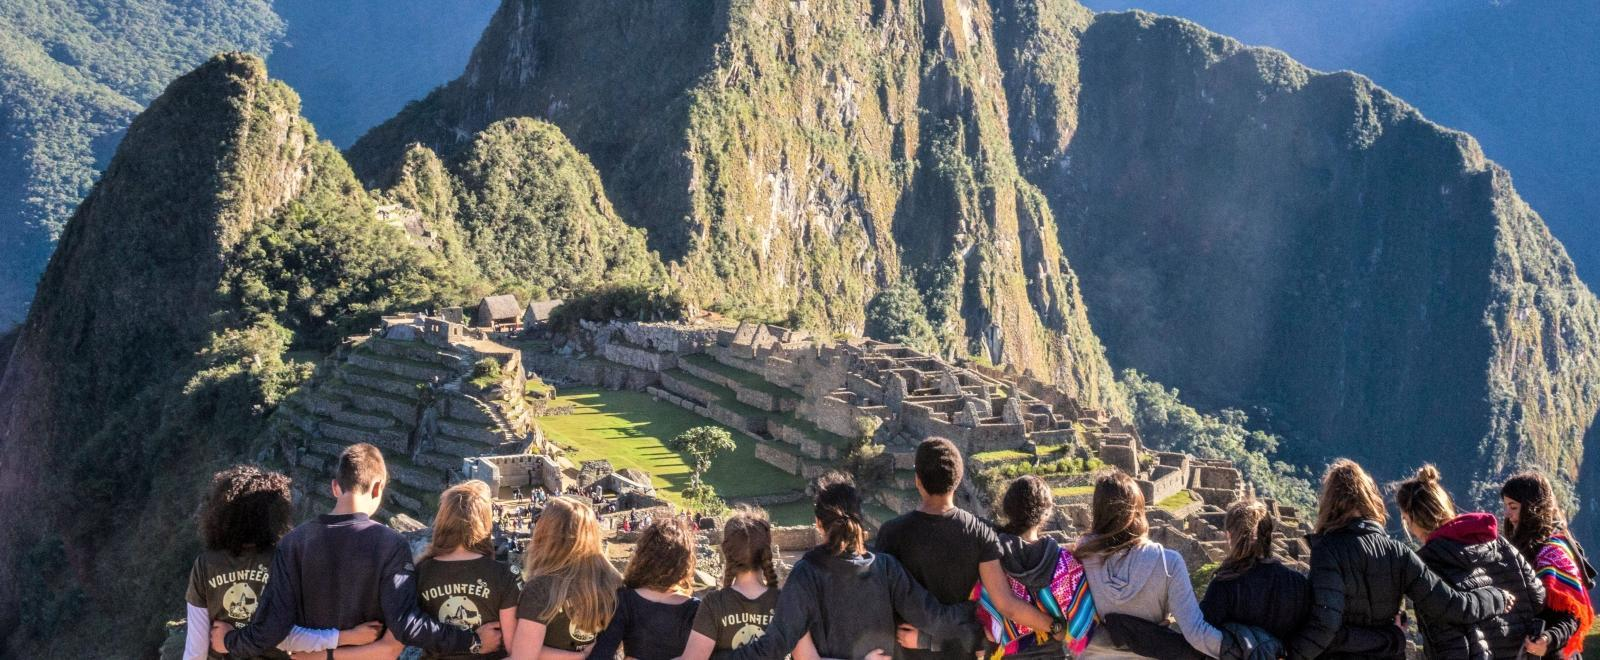 Volunteers on a global gap year visit Machu Picchu on a weekend trip in Peru.